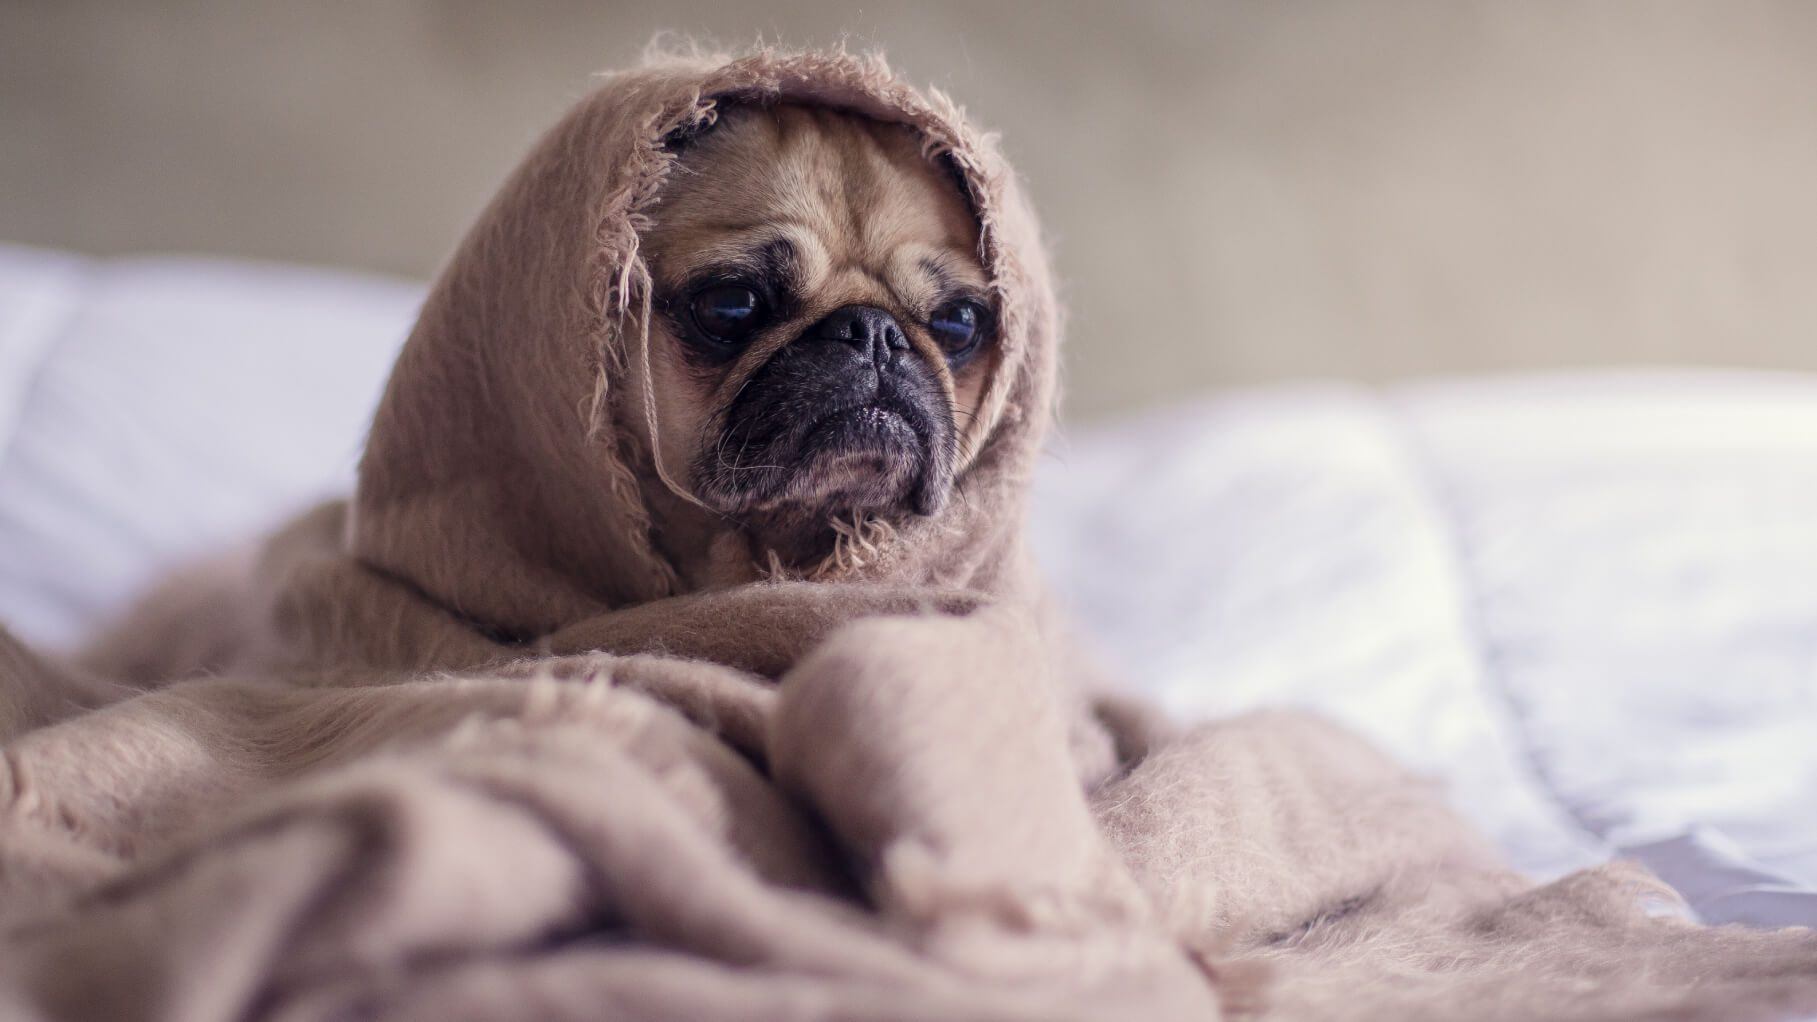 pug wrapped up in a blanket